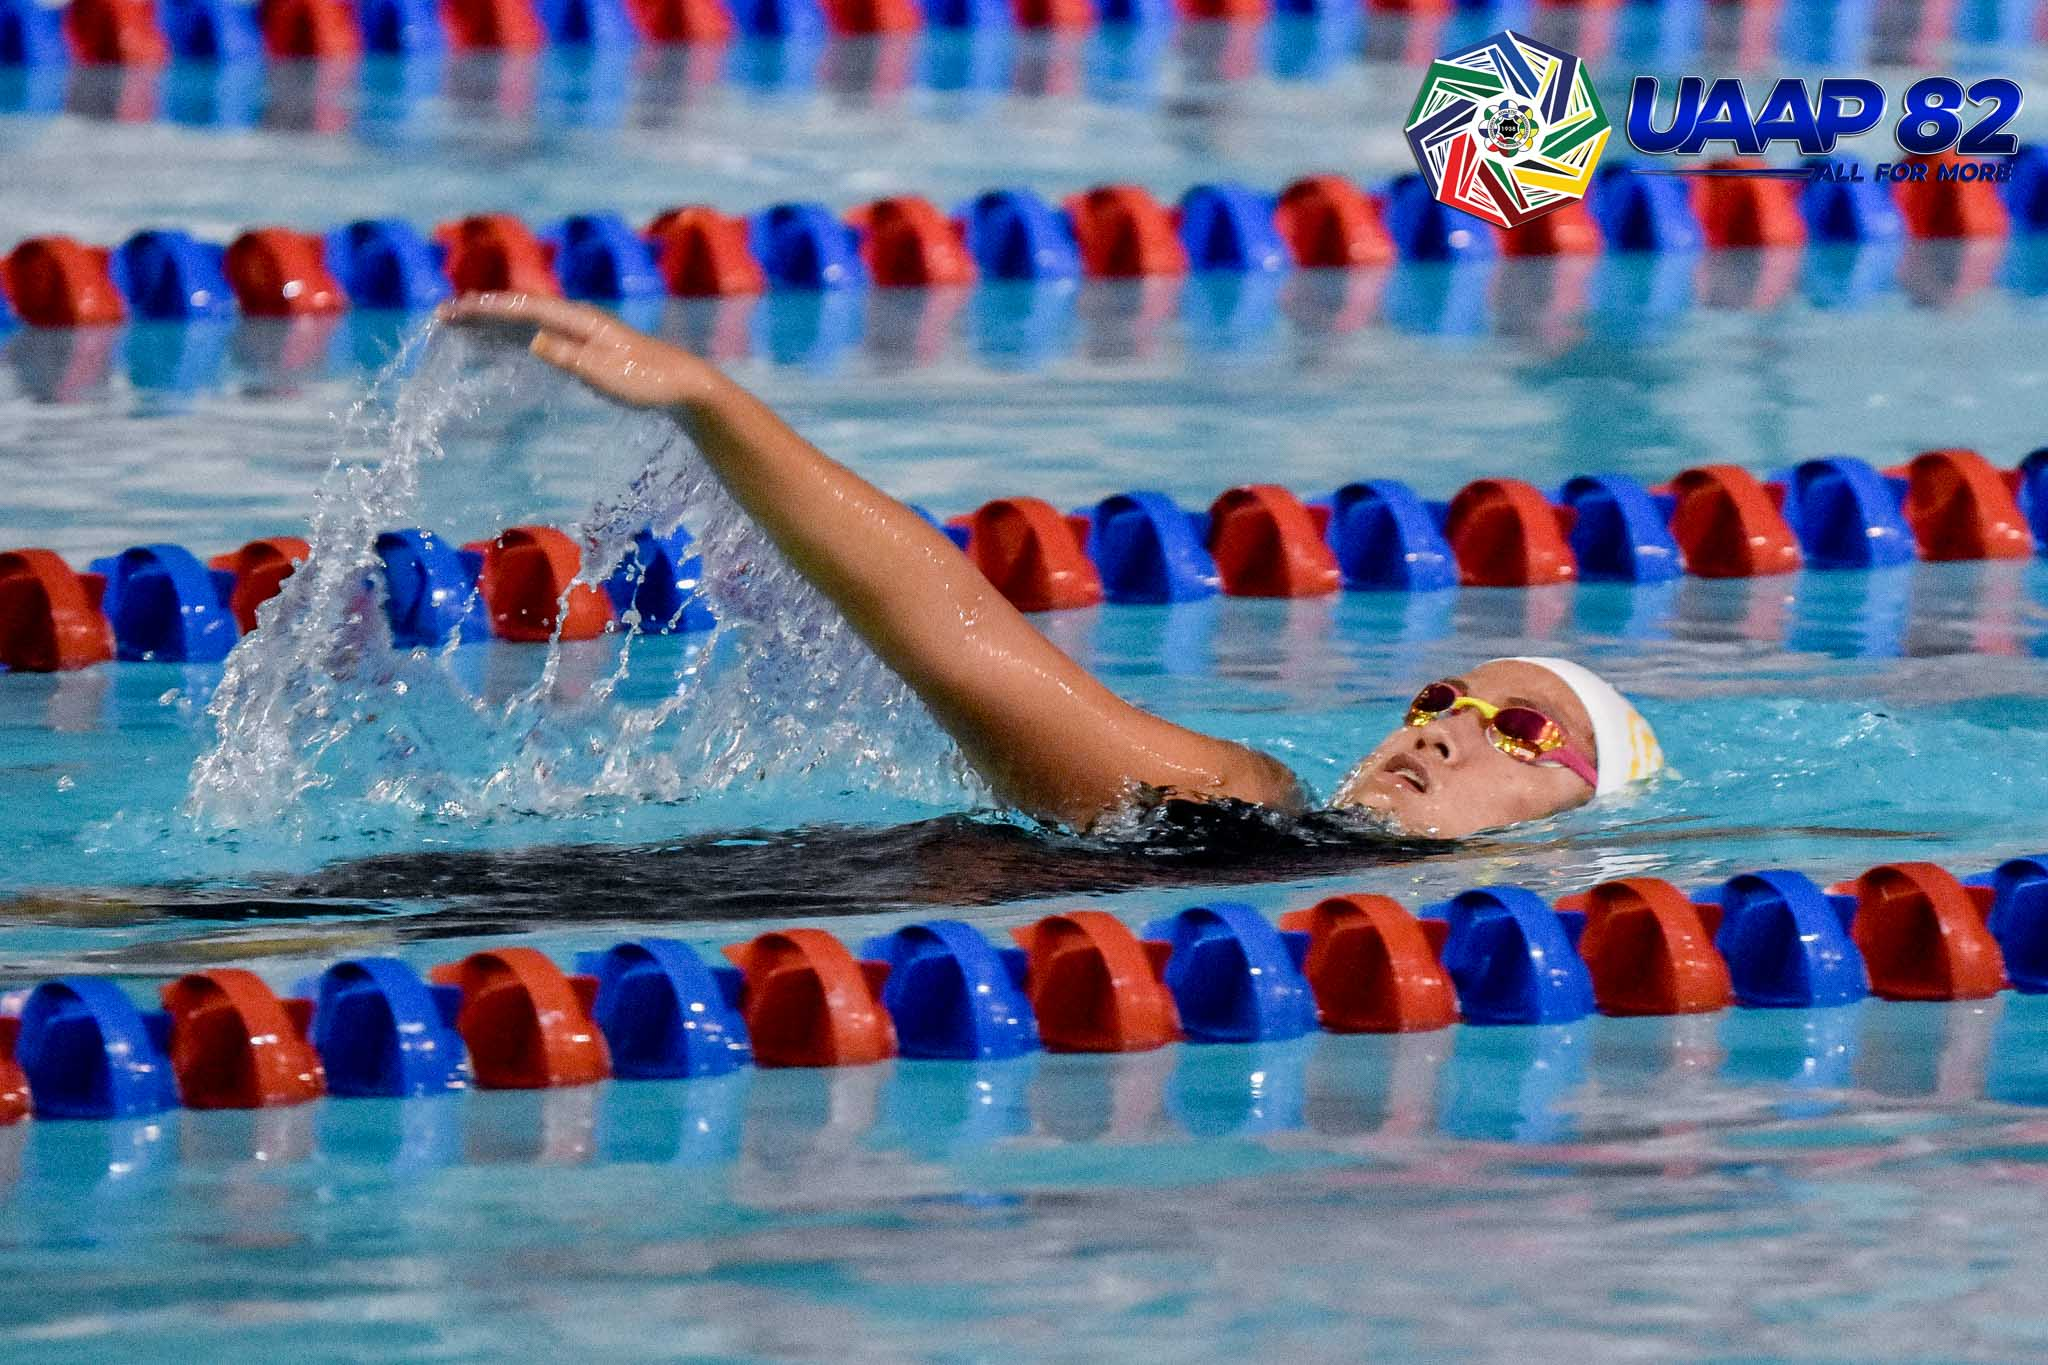 Tiebreaker Times DLSZ Boys, UST Girls close out Day 1 with golds ADMU DLSU News Swimming UAAP UE UP UST  Zoe Hilario Yvoria Rosales UST Girls Swimming UST Boys Swimming UP Girls Swimming UE Girls Swimming UE Boys Swimming UAAP Season 82 High School Swimming UAAP Season 82 Shayne Lugay Noah Labasan Mikhail Ramones Lord Mikhail Cruz Kyla Managuelod Kristina Baccay Jose Antonio Dela Rosa John Neil Paderes Jerico Salas James Hutchings Jade Guevarra Inaki Lorbes Honey Ezcarez Franco Dela Rosa DLSZ Girls Swimming DLSZ Boys Swimming Camille Buico Ateneo Boys Swimming Anna Hanson Alexandra Bonite